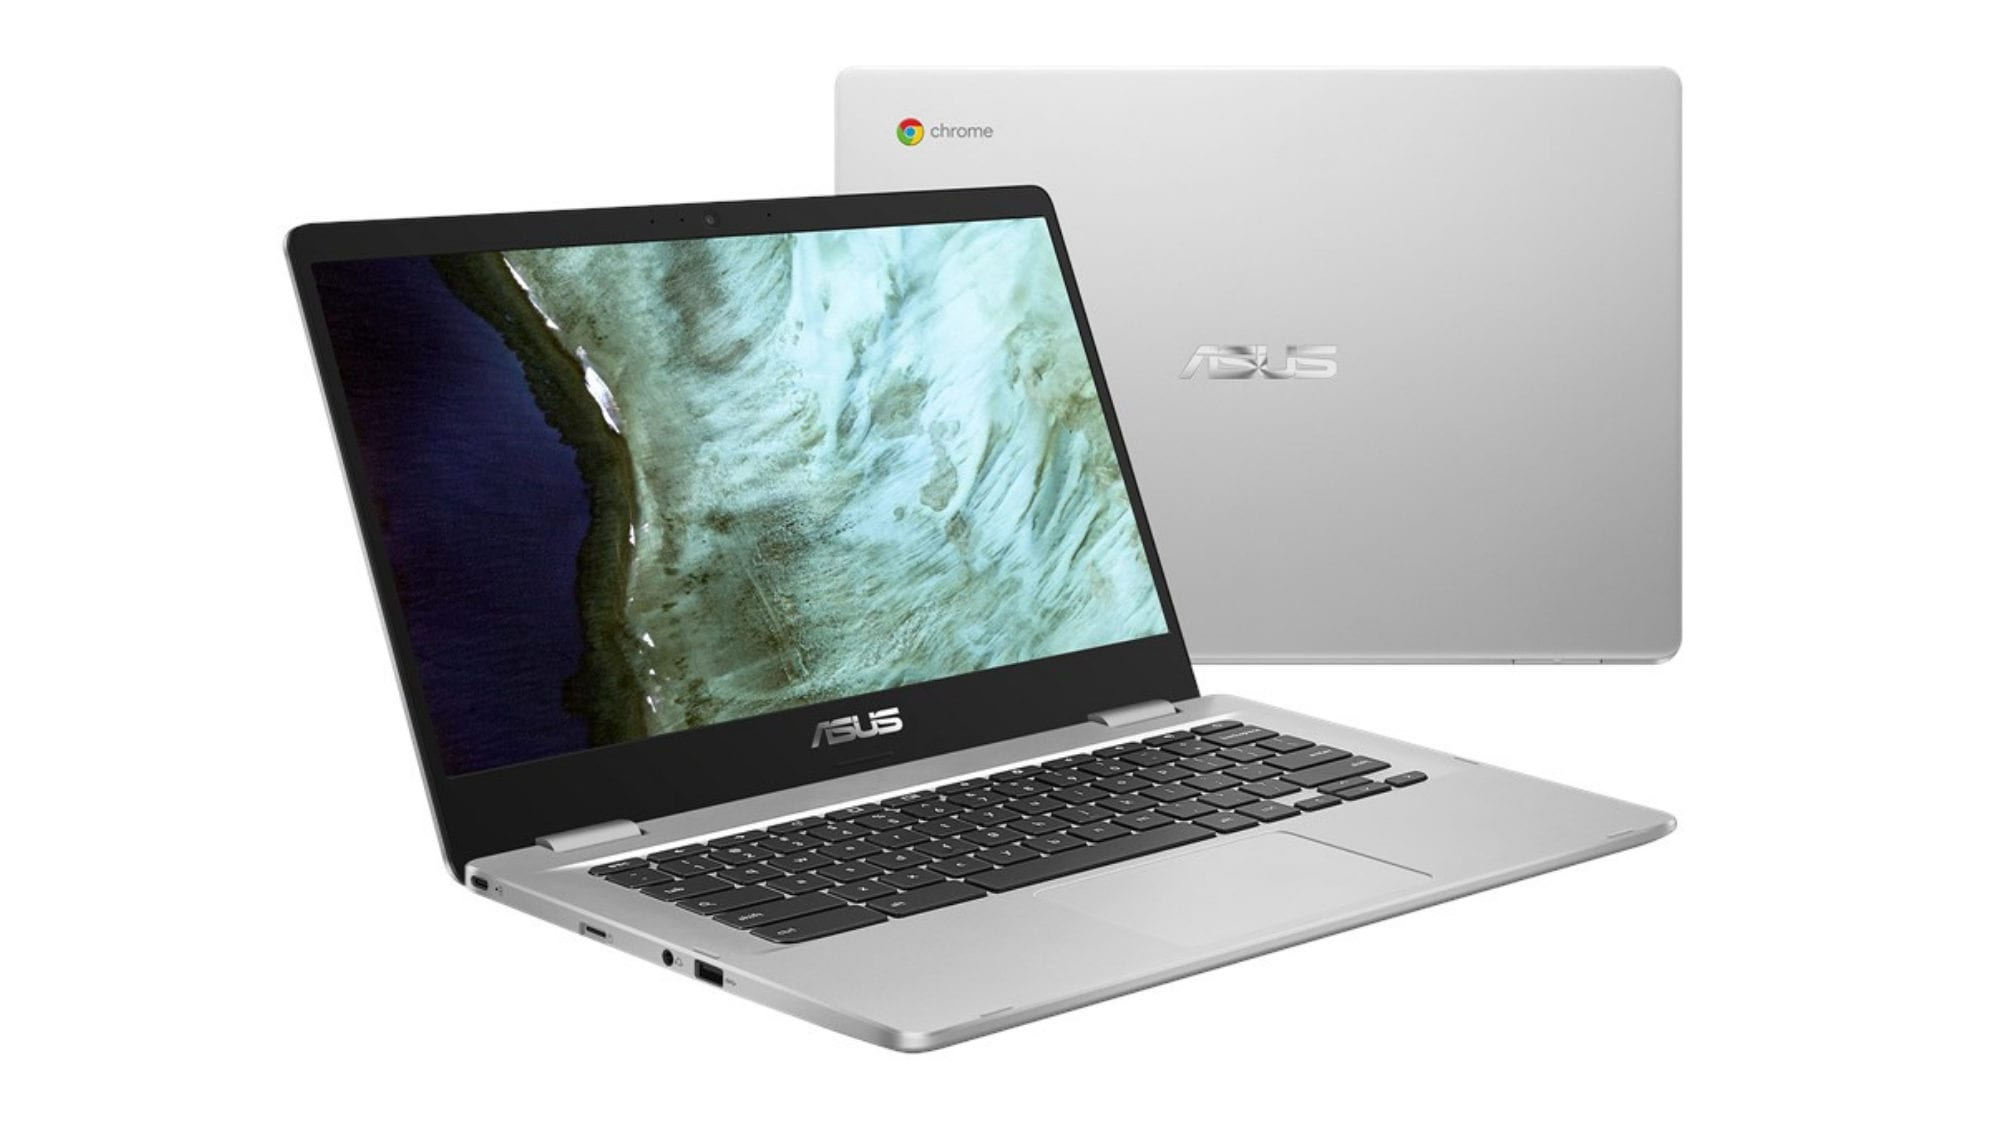 New ASUS Chromebook C424 May Merge Performance and Value